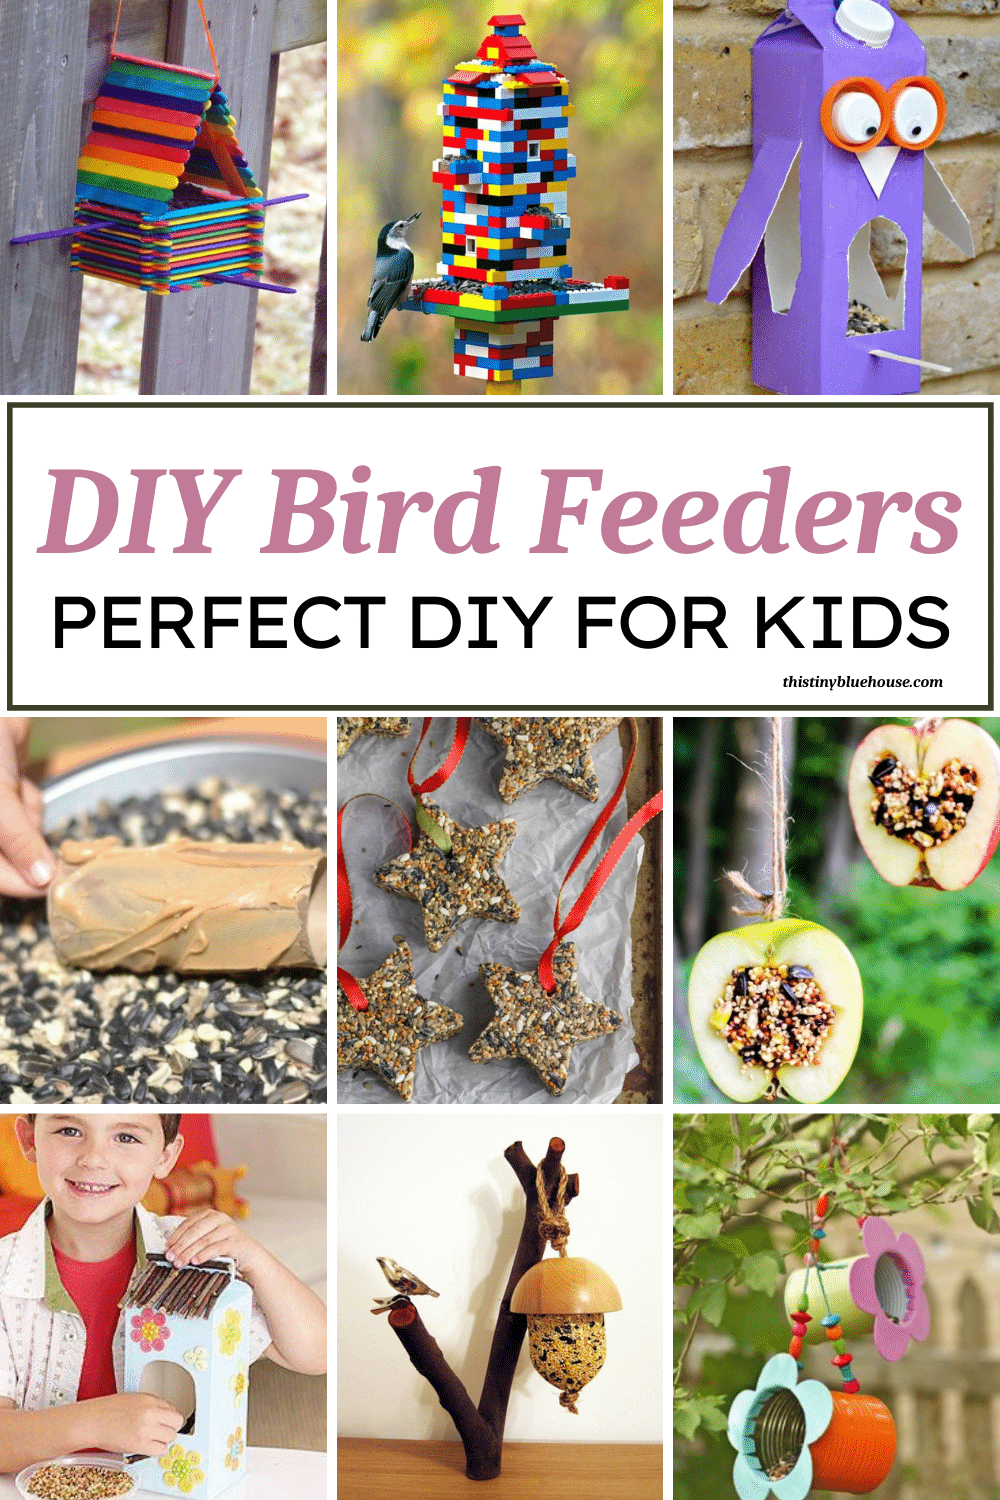 are you looking to add a bird feeder to your property to attract birds to watch? Here are over 25 of the best easy DIY bird feeders that are perfect to make with young kids.